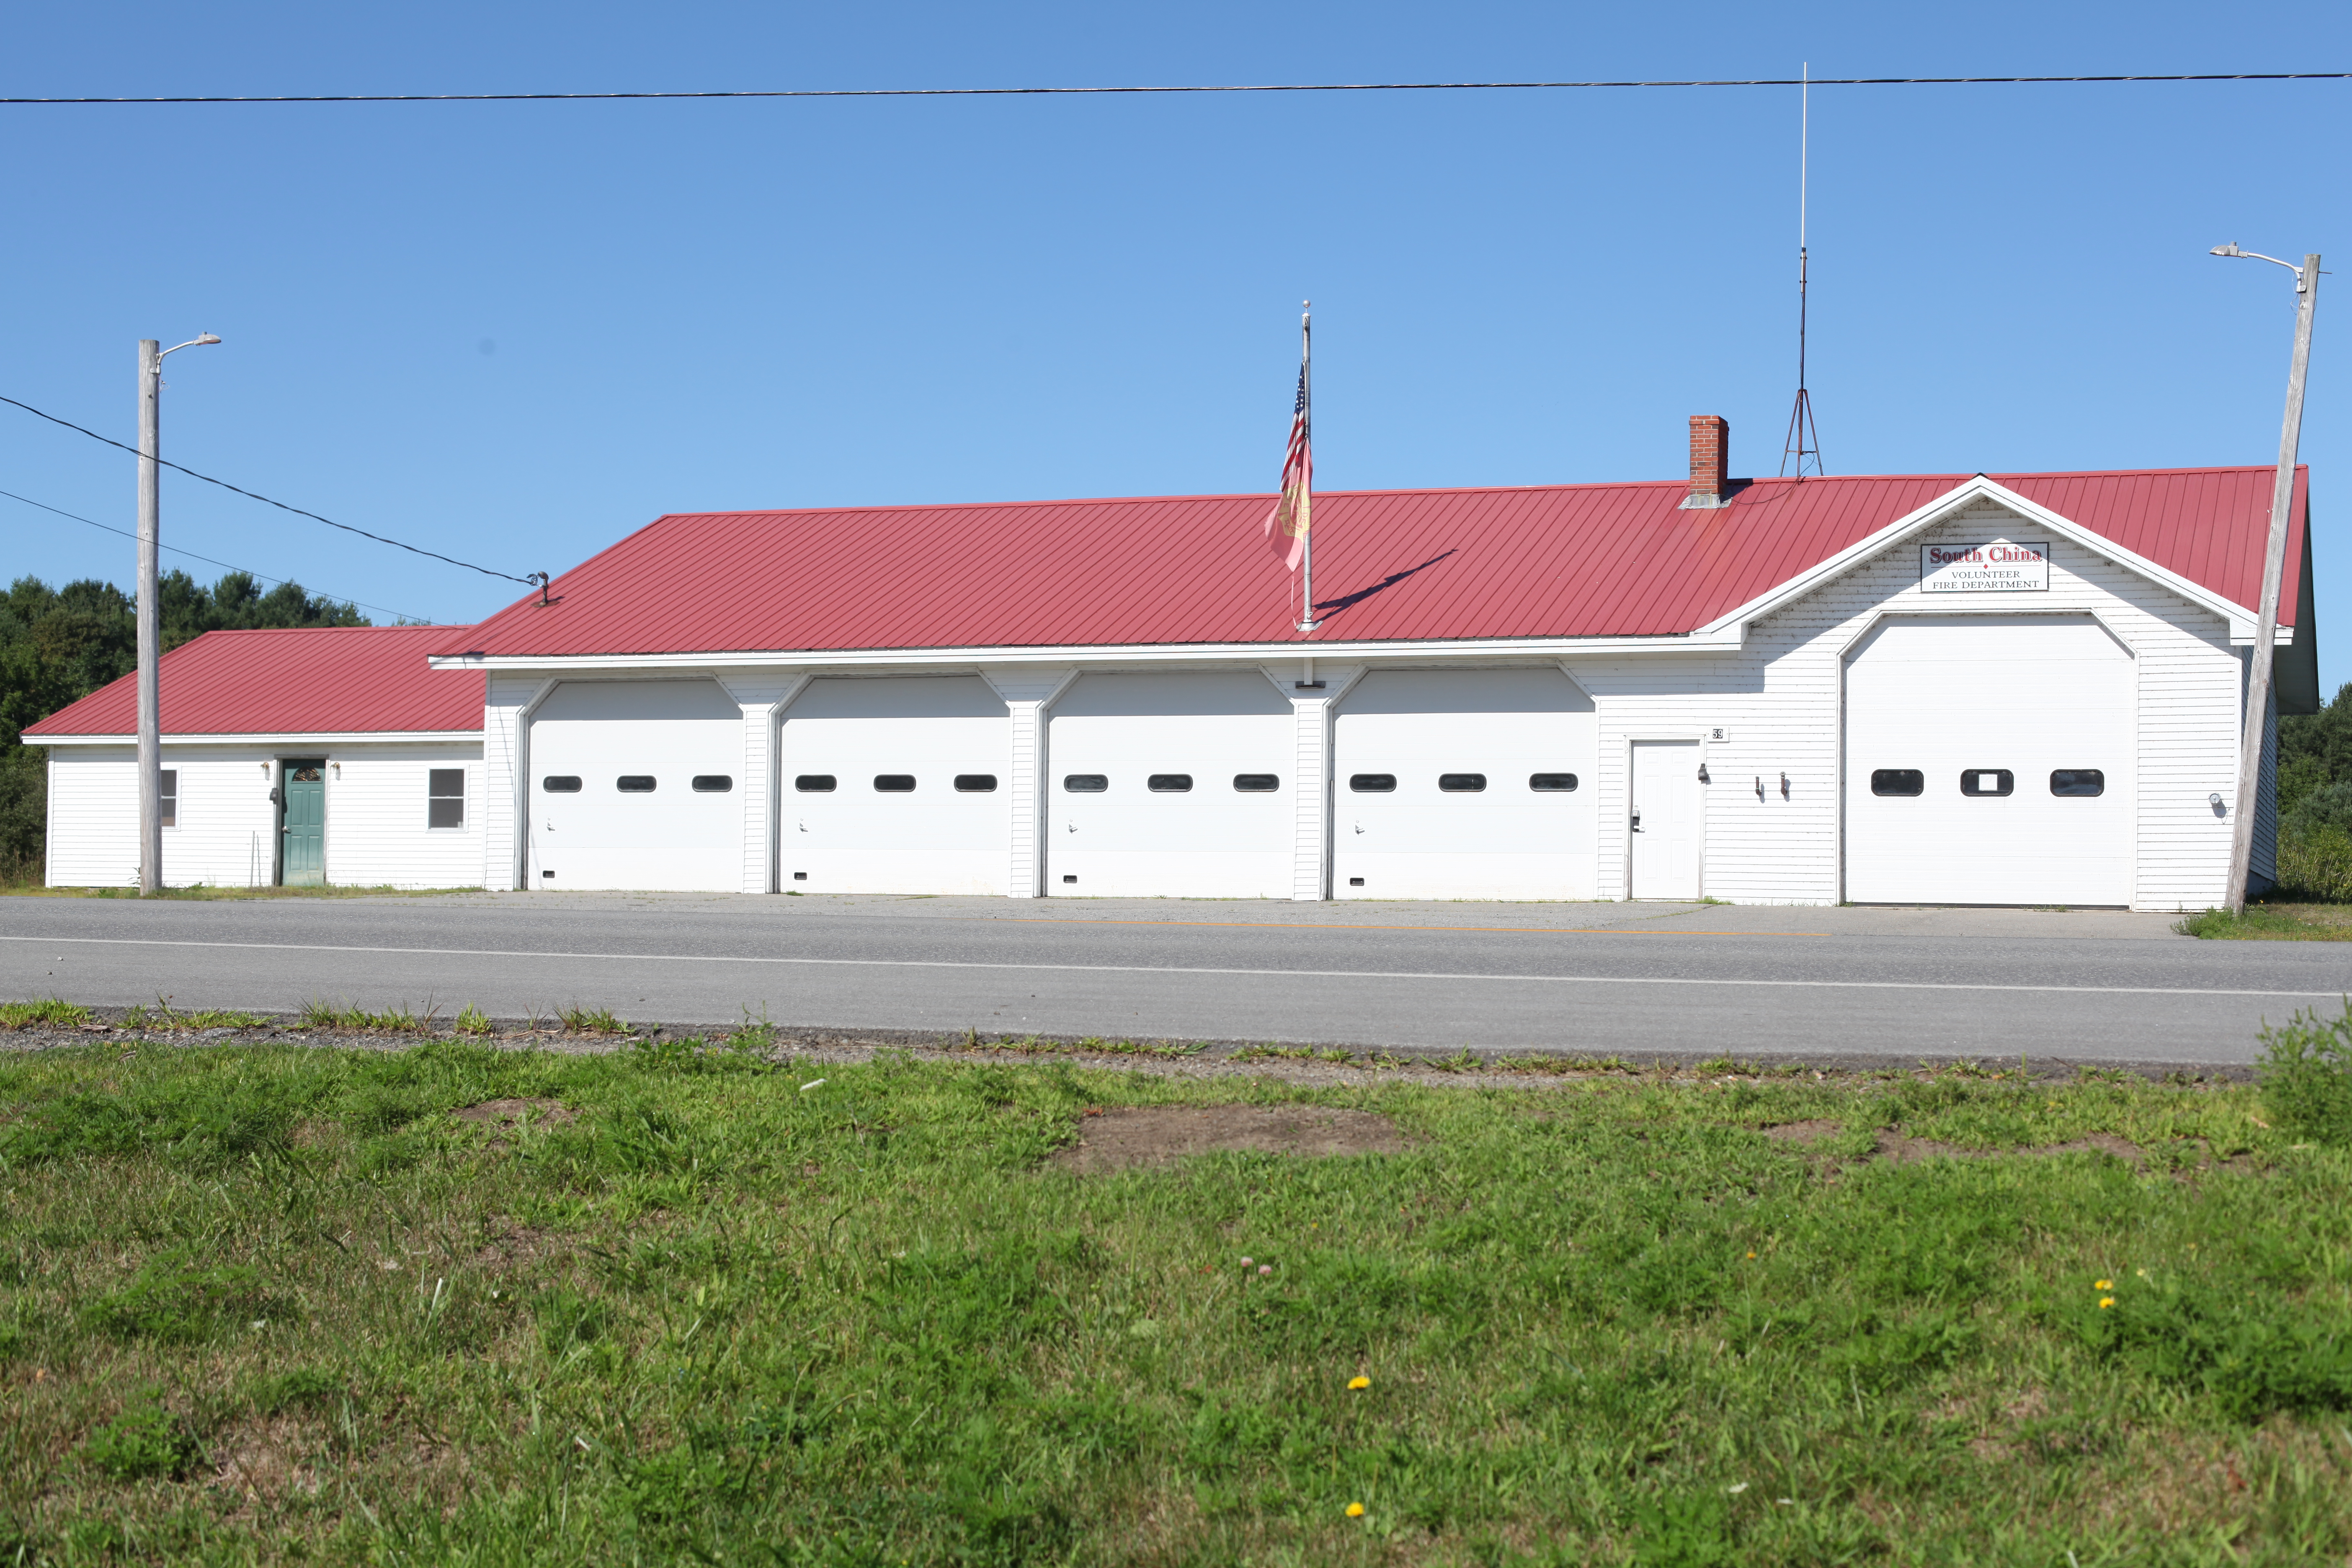 South China Fire Department - Town of China, Maine